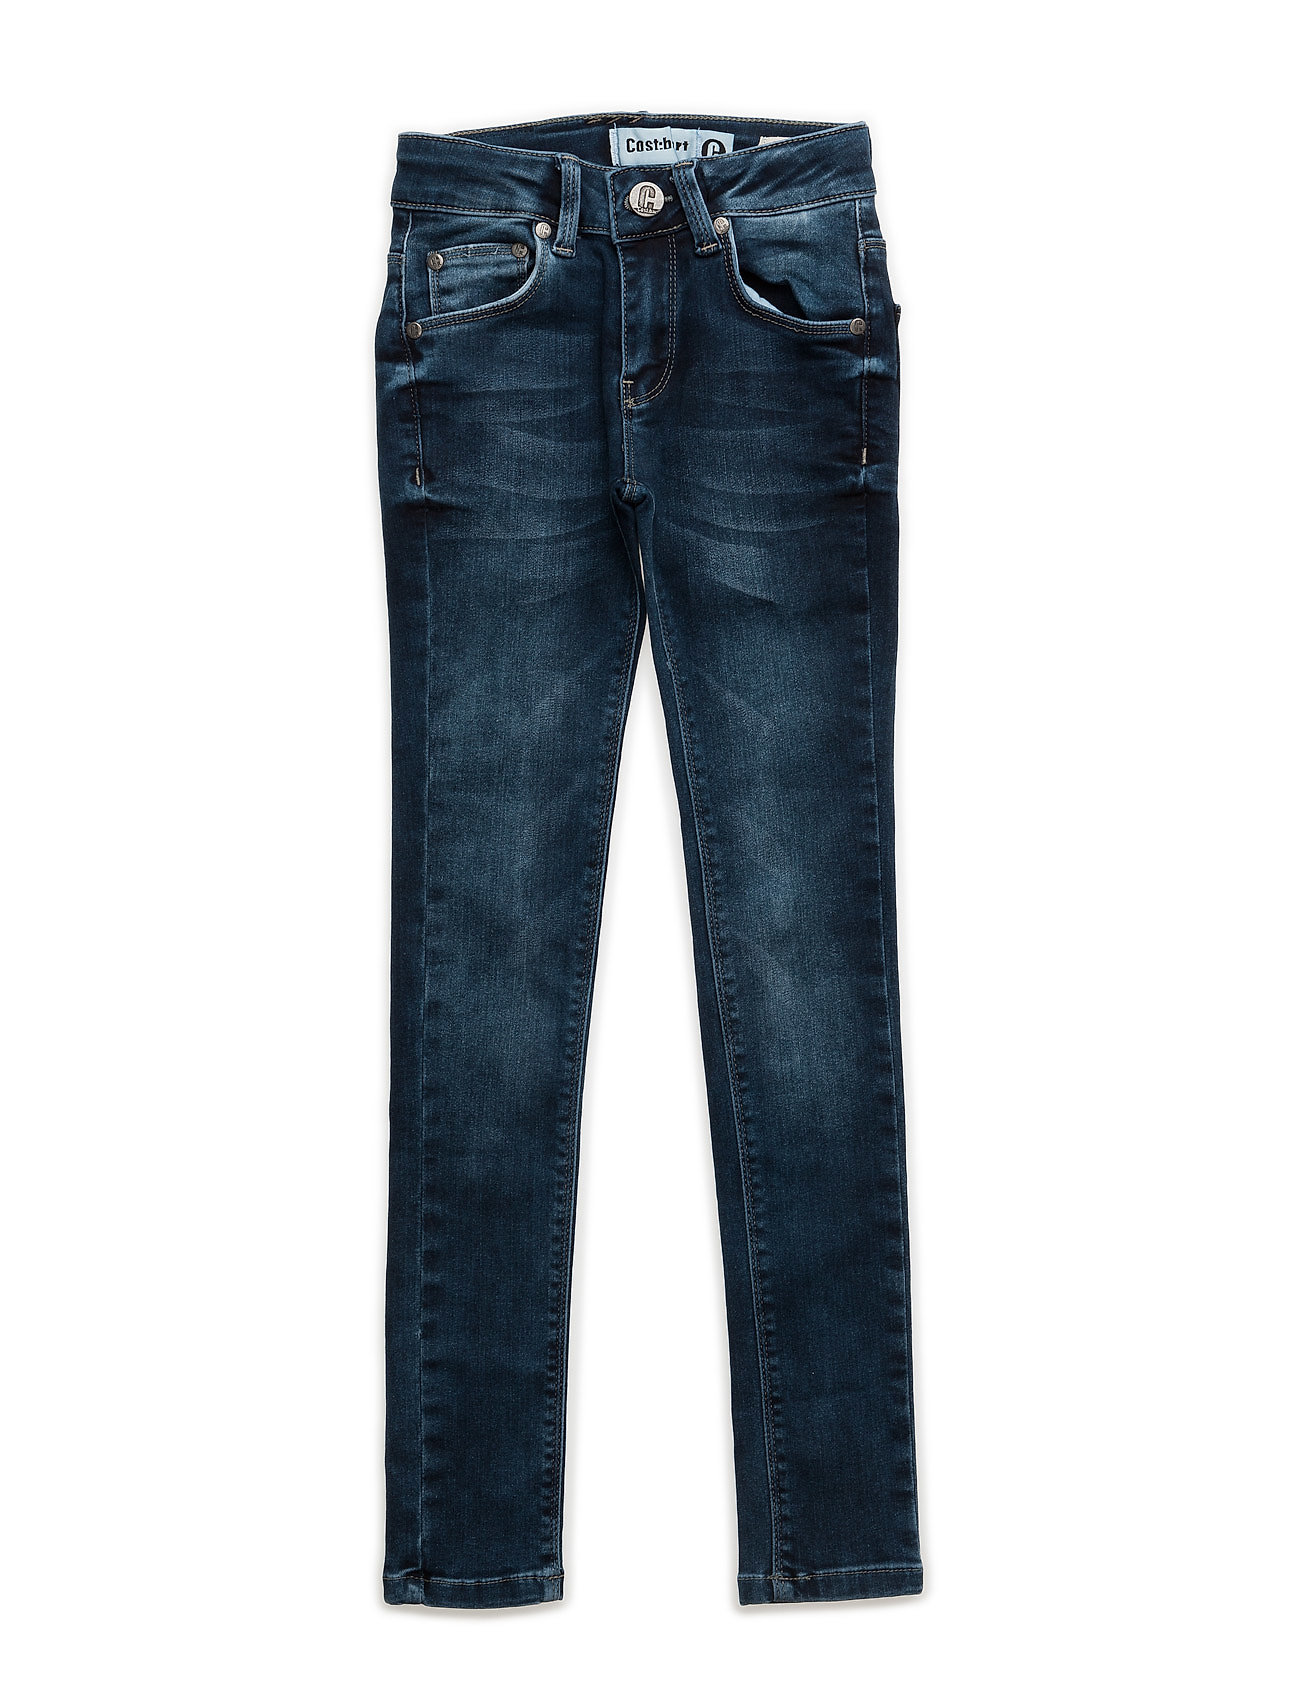 Costbart BOWINE JEANS COL. 807 - BLUE